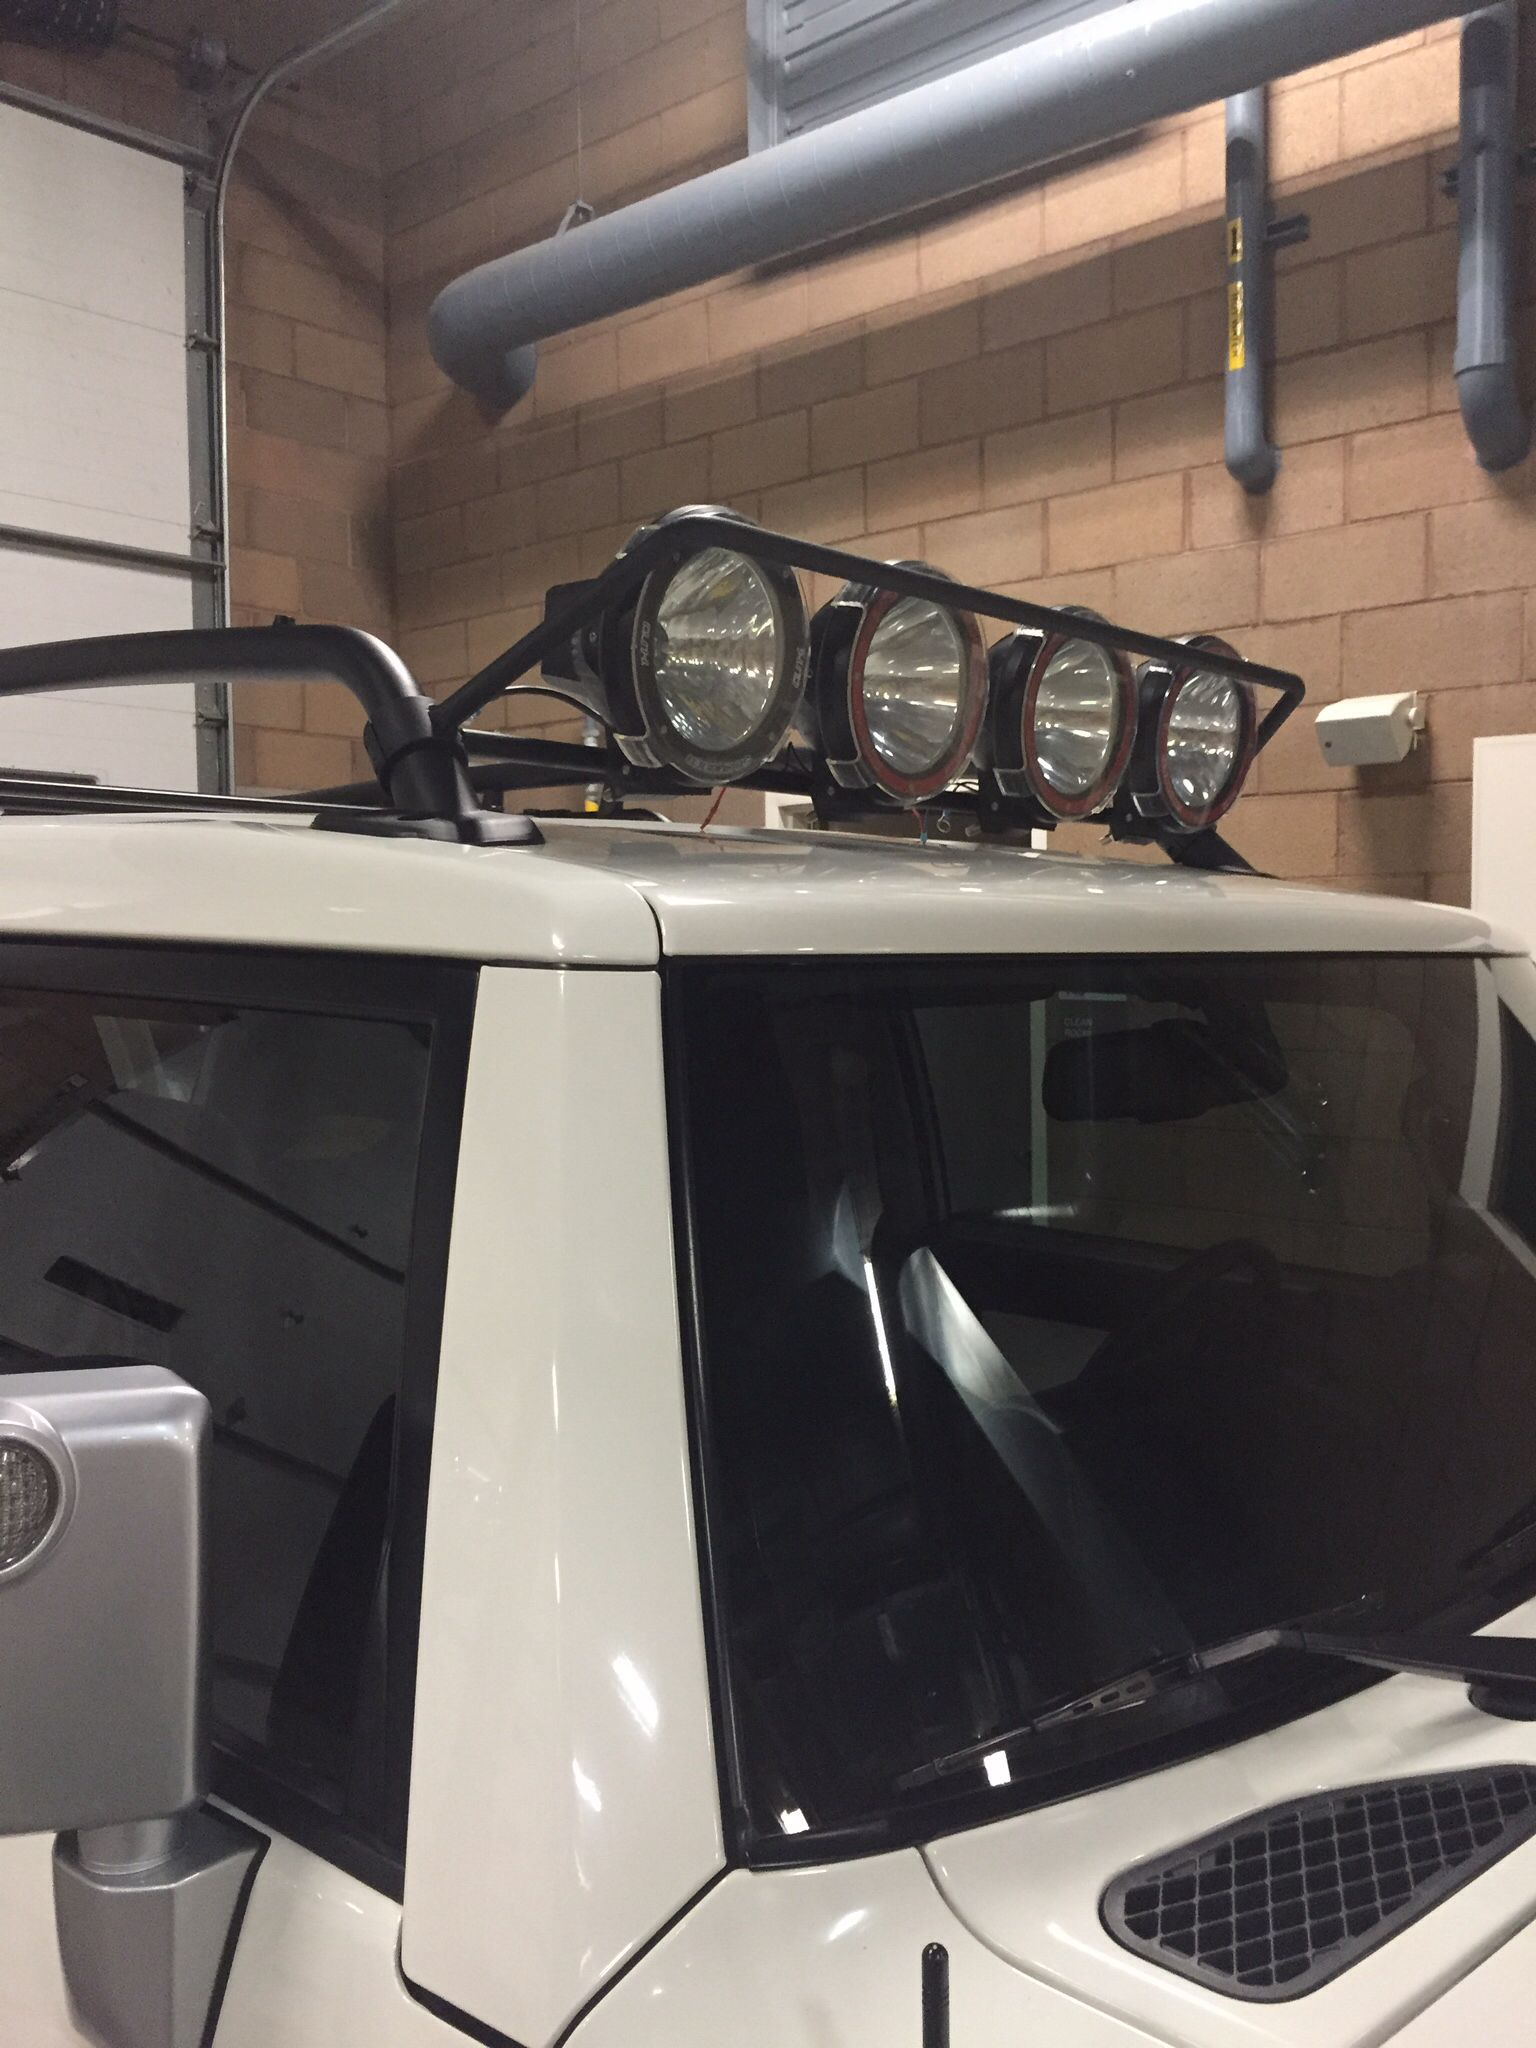 The light bar I made from 1.75 clamps from ebay and 3/4